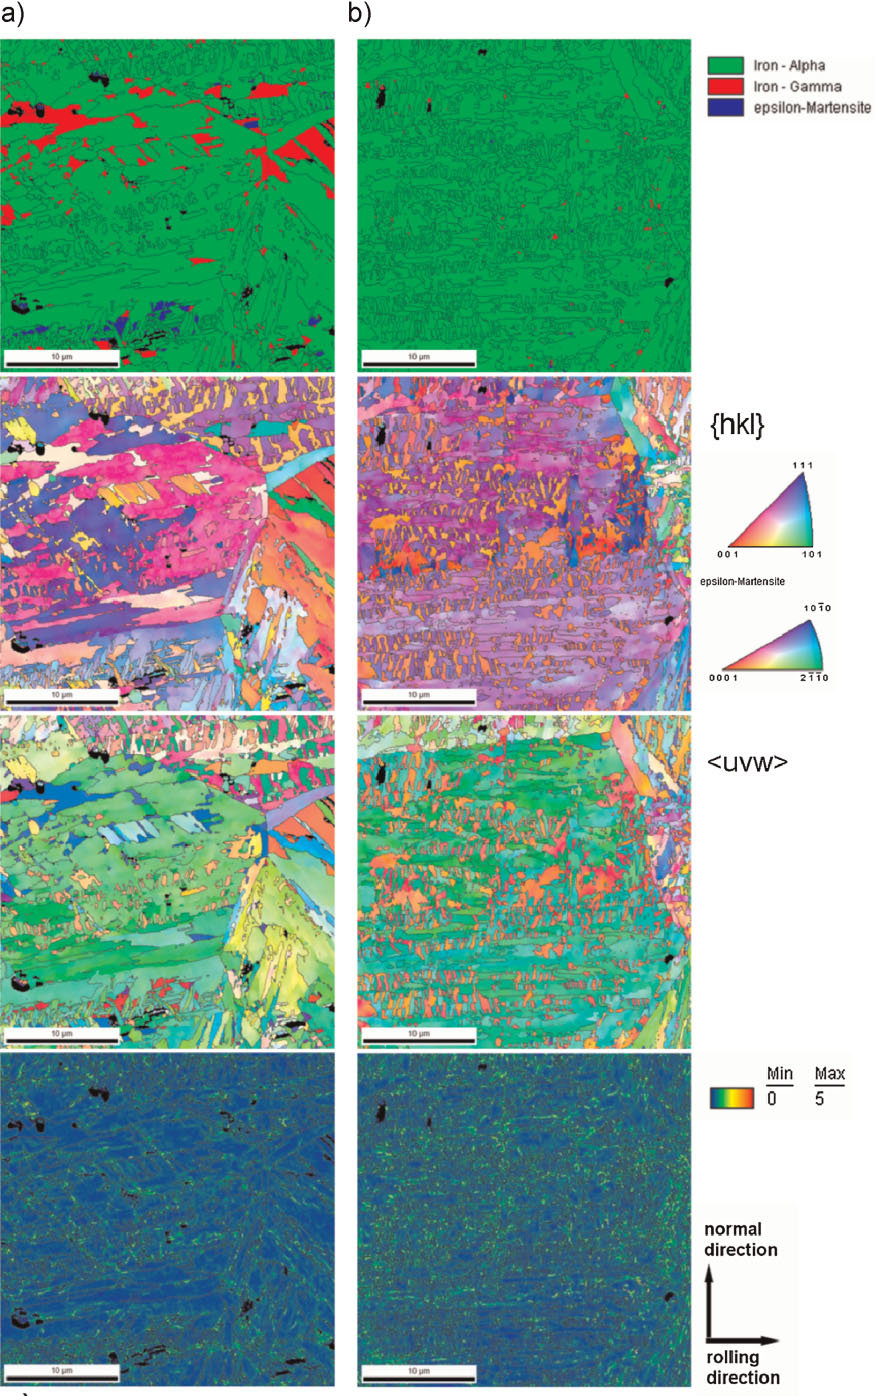 Figure 7: High resolution EBSD maps taken on the 12 wt%Mn sample in the as-quenched plus aged state (a), and the same microstructure at uniform elongation in the deformed flat tensile specimen (b). The top row shows the phase content. The second row shows the texture in terms of the {hkl} Miller indices parallel to the normal direction. The third row shows the texture in terms of the Miller indices parallel to the rolling direction. The bottom row shows the average local misorientation (50 nm step size).